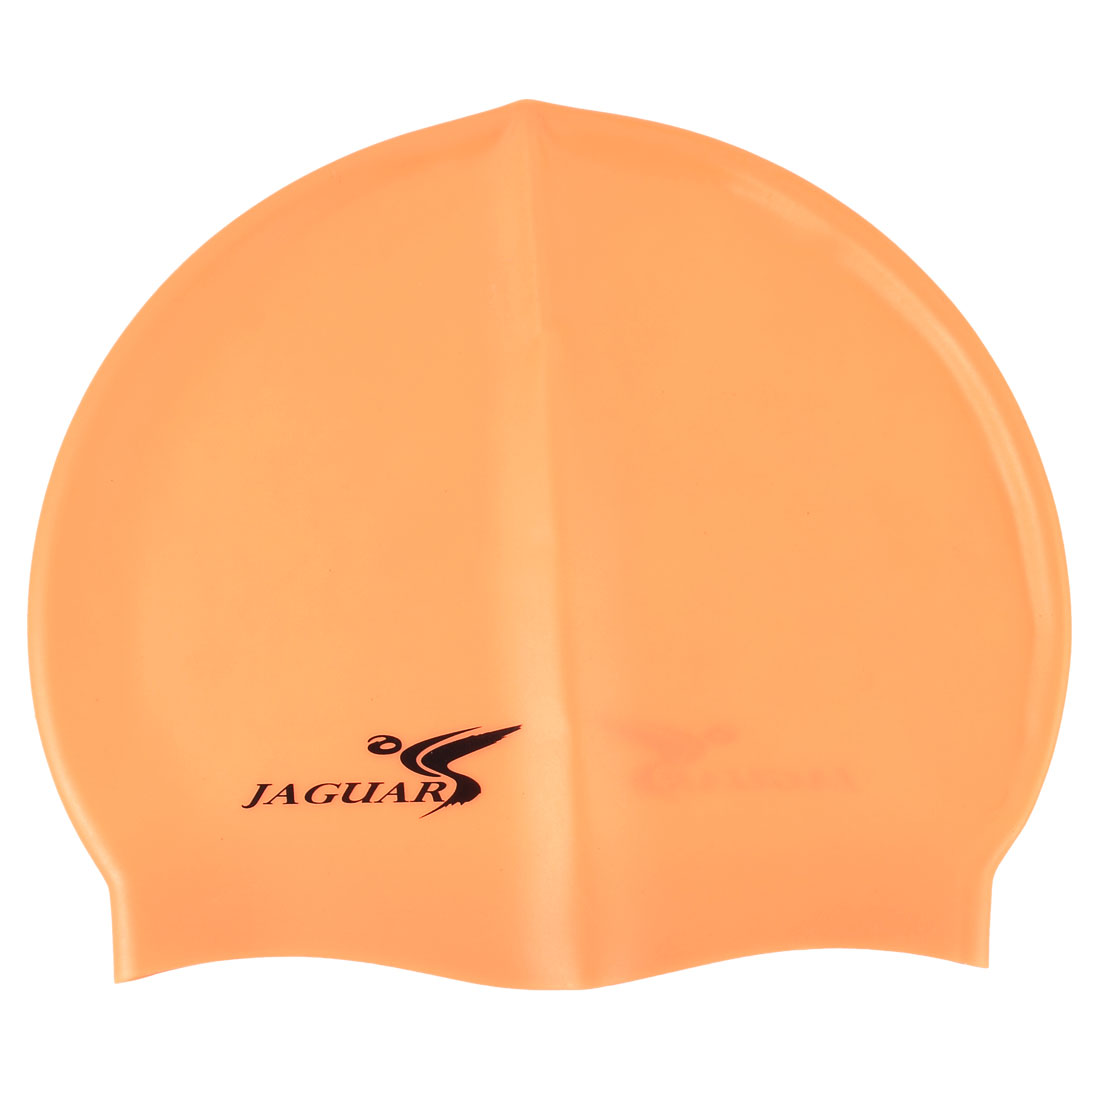 Dome Shape Light Orange Silicone Stretchy Swim Cap Hat for Women Men